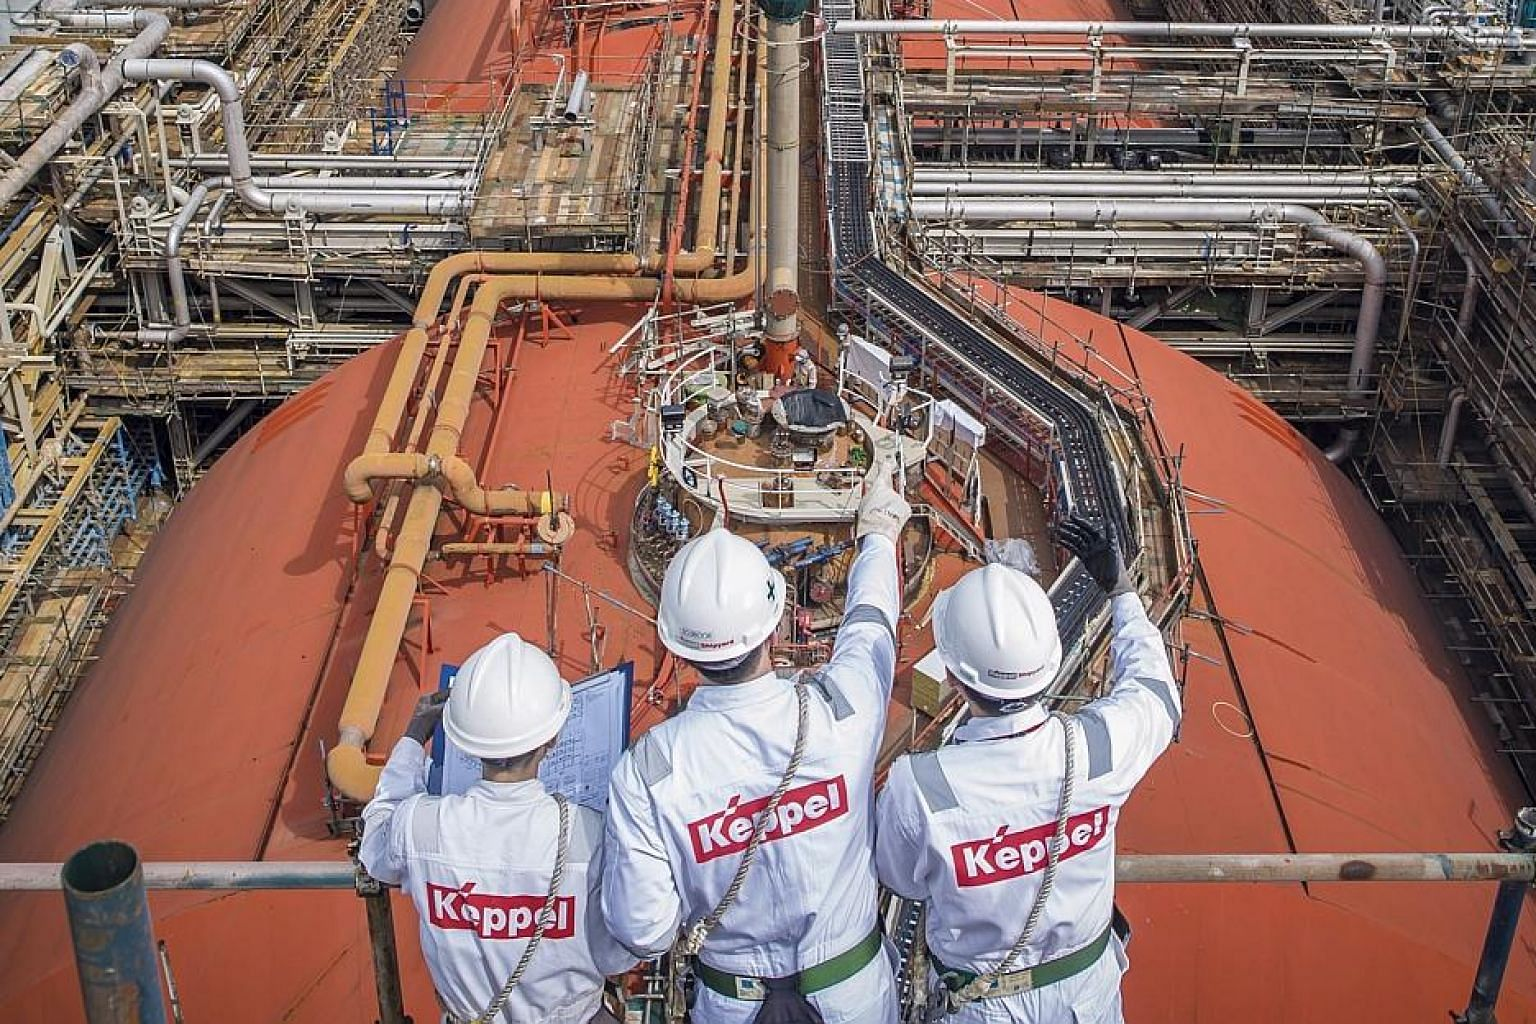 Keppel O&M saw an increased workload last year, which led it to hire 2,800 additional direct employees, more than it had anticipated. PHOTO: KEPPEL CORPORATION